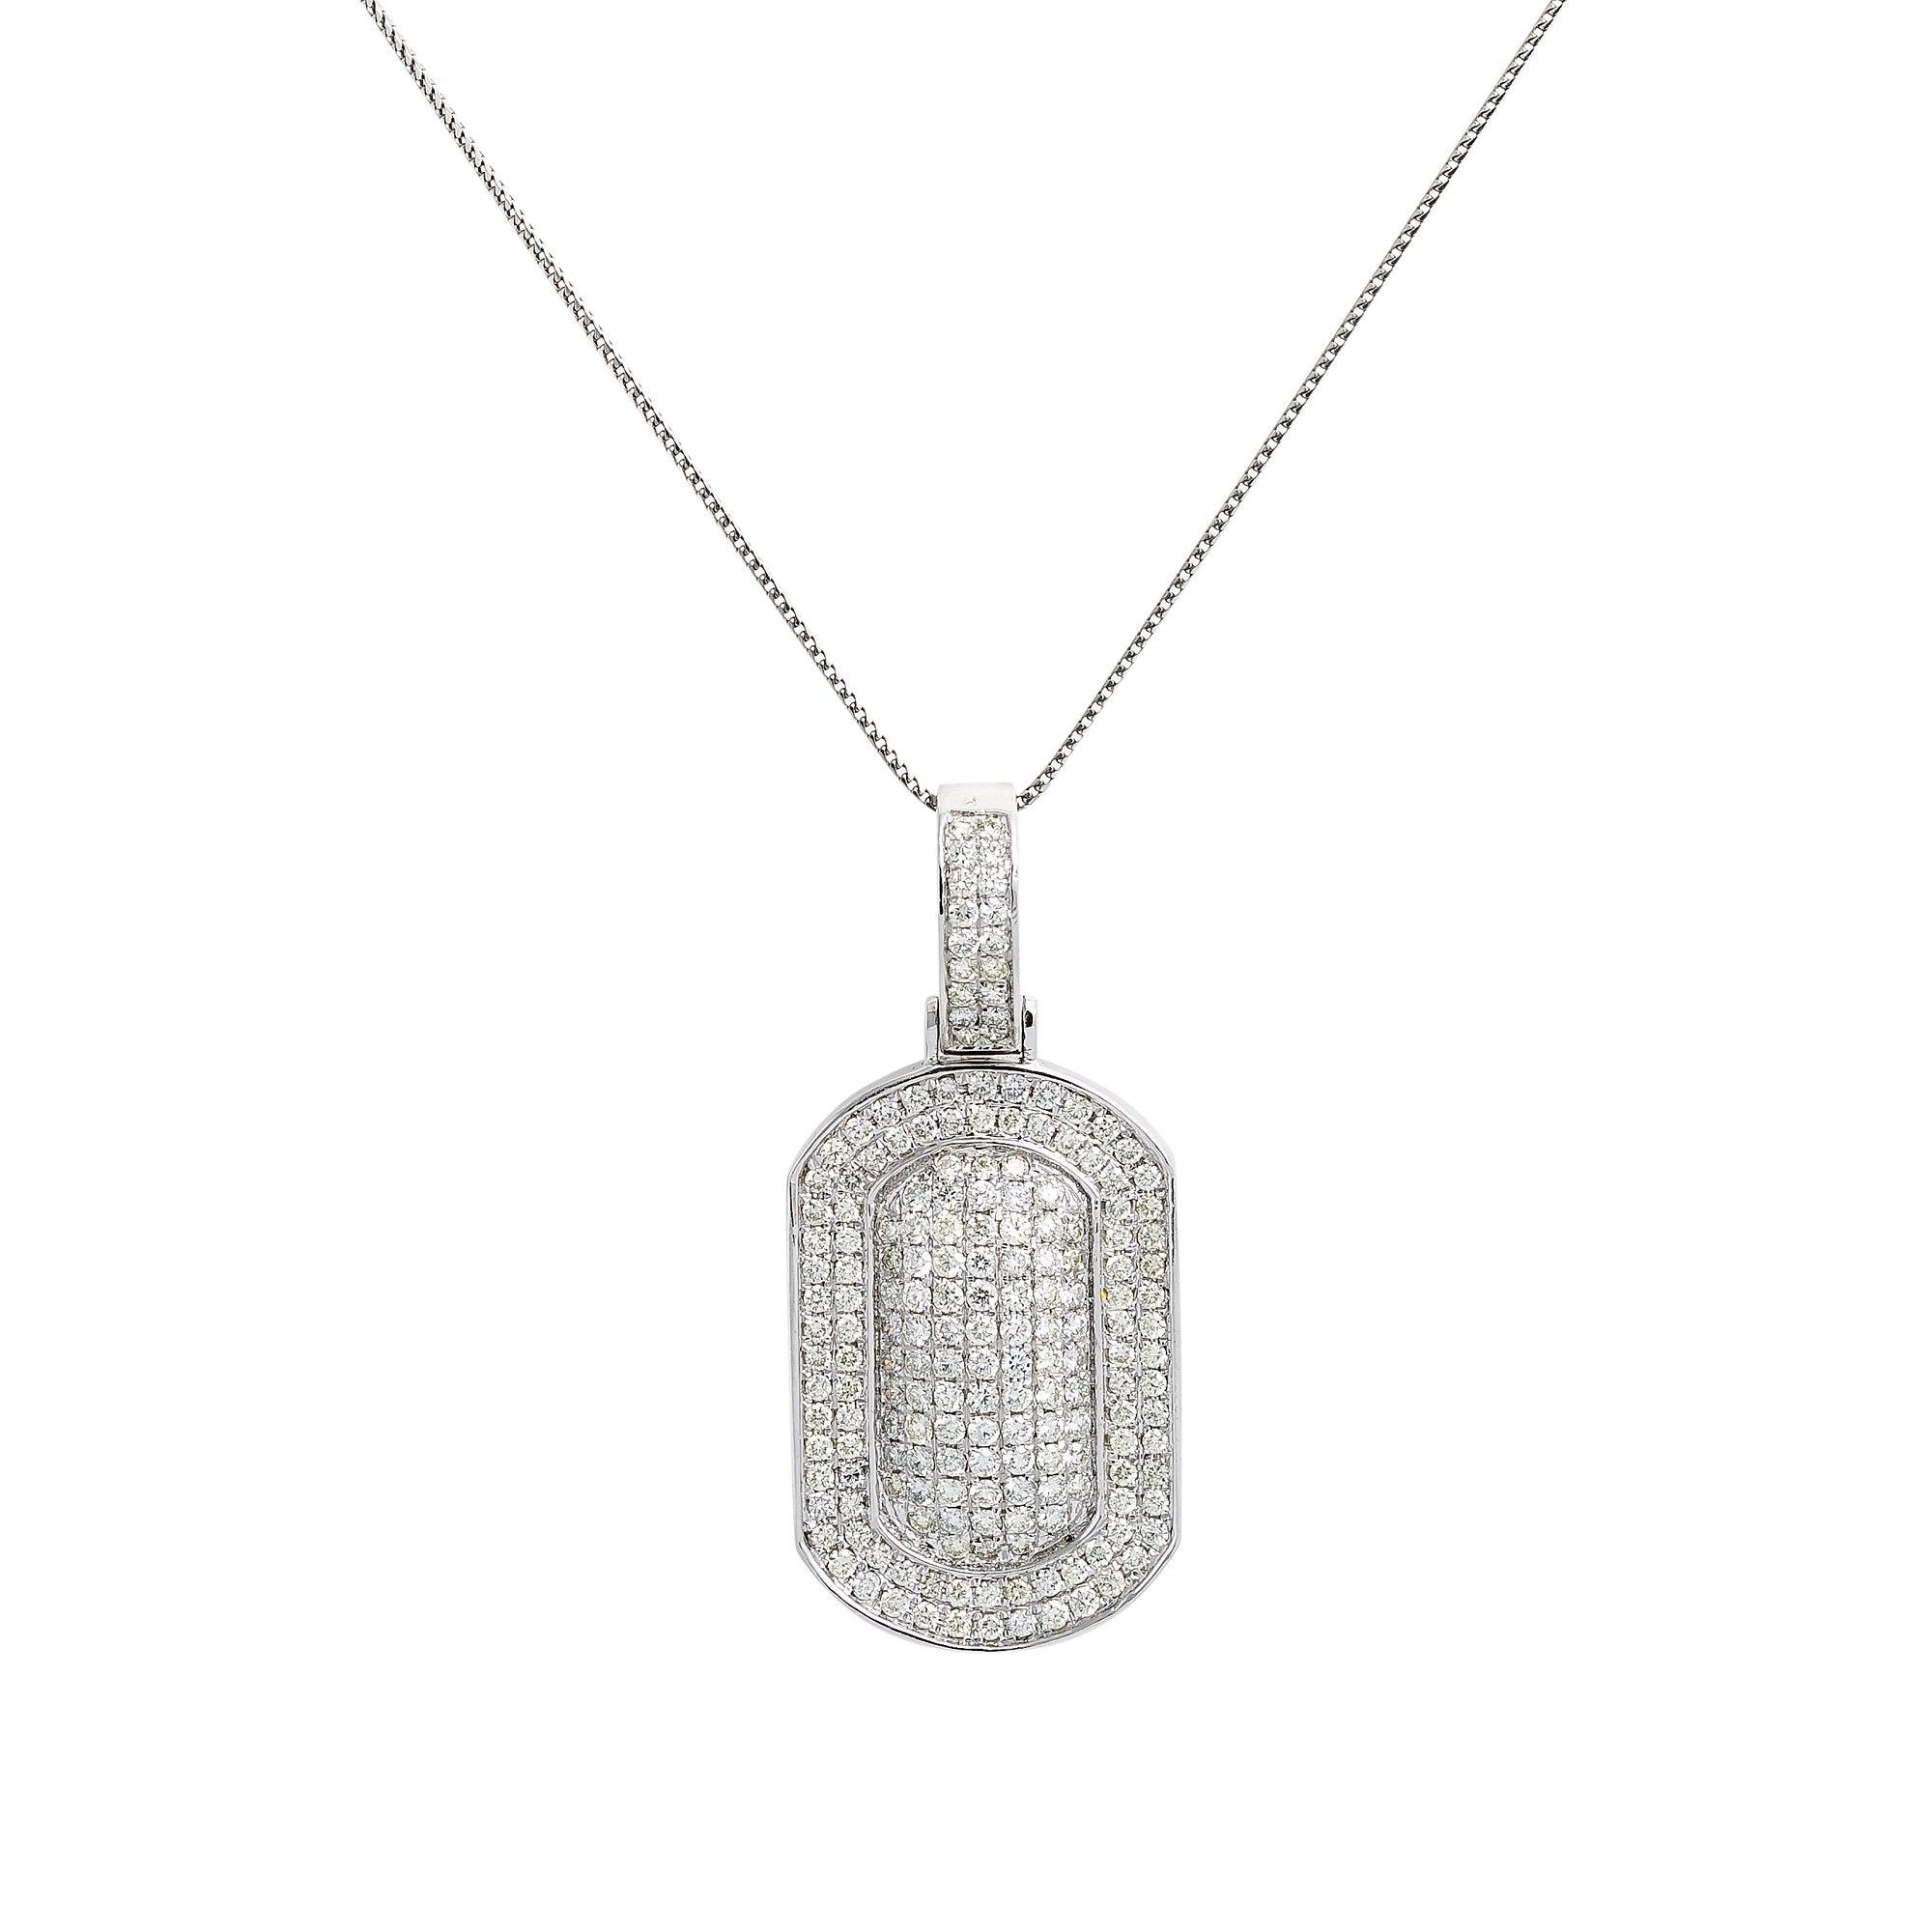 Unisex 14K White Gold Pendant with 2.40 CT Diamonds